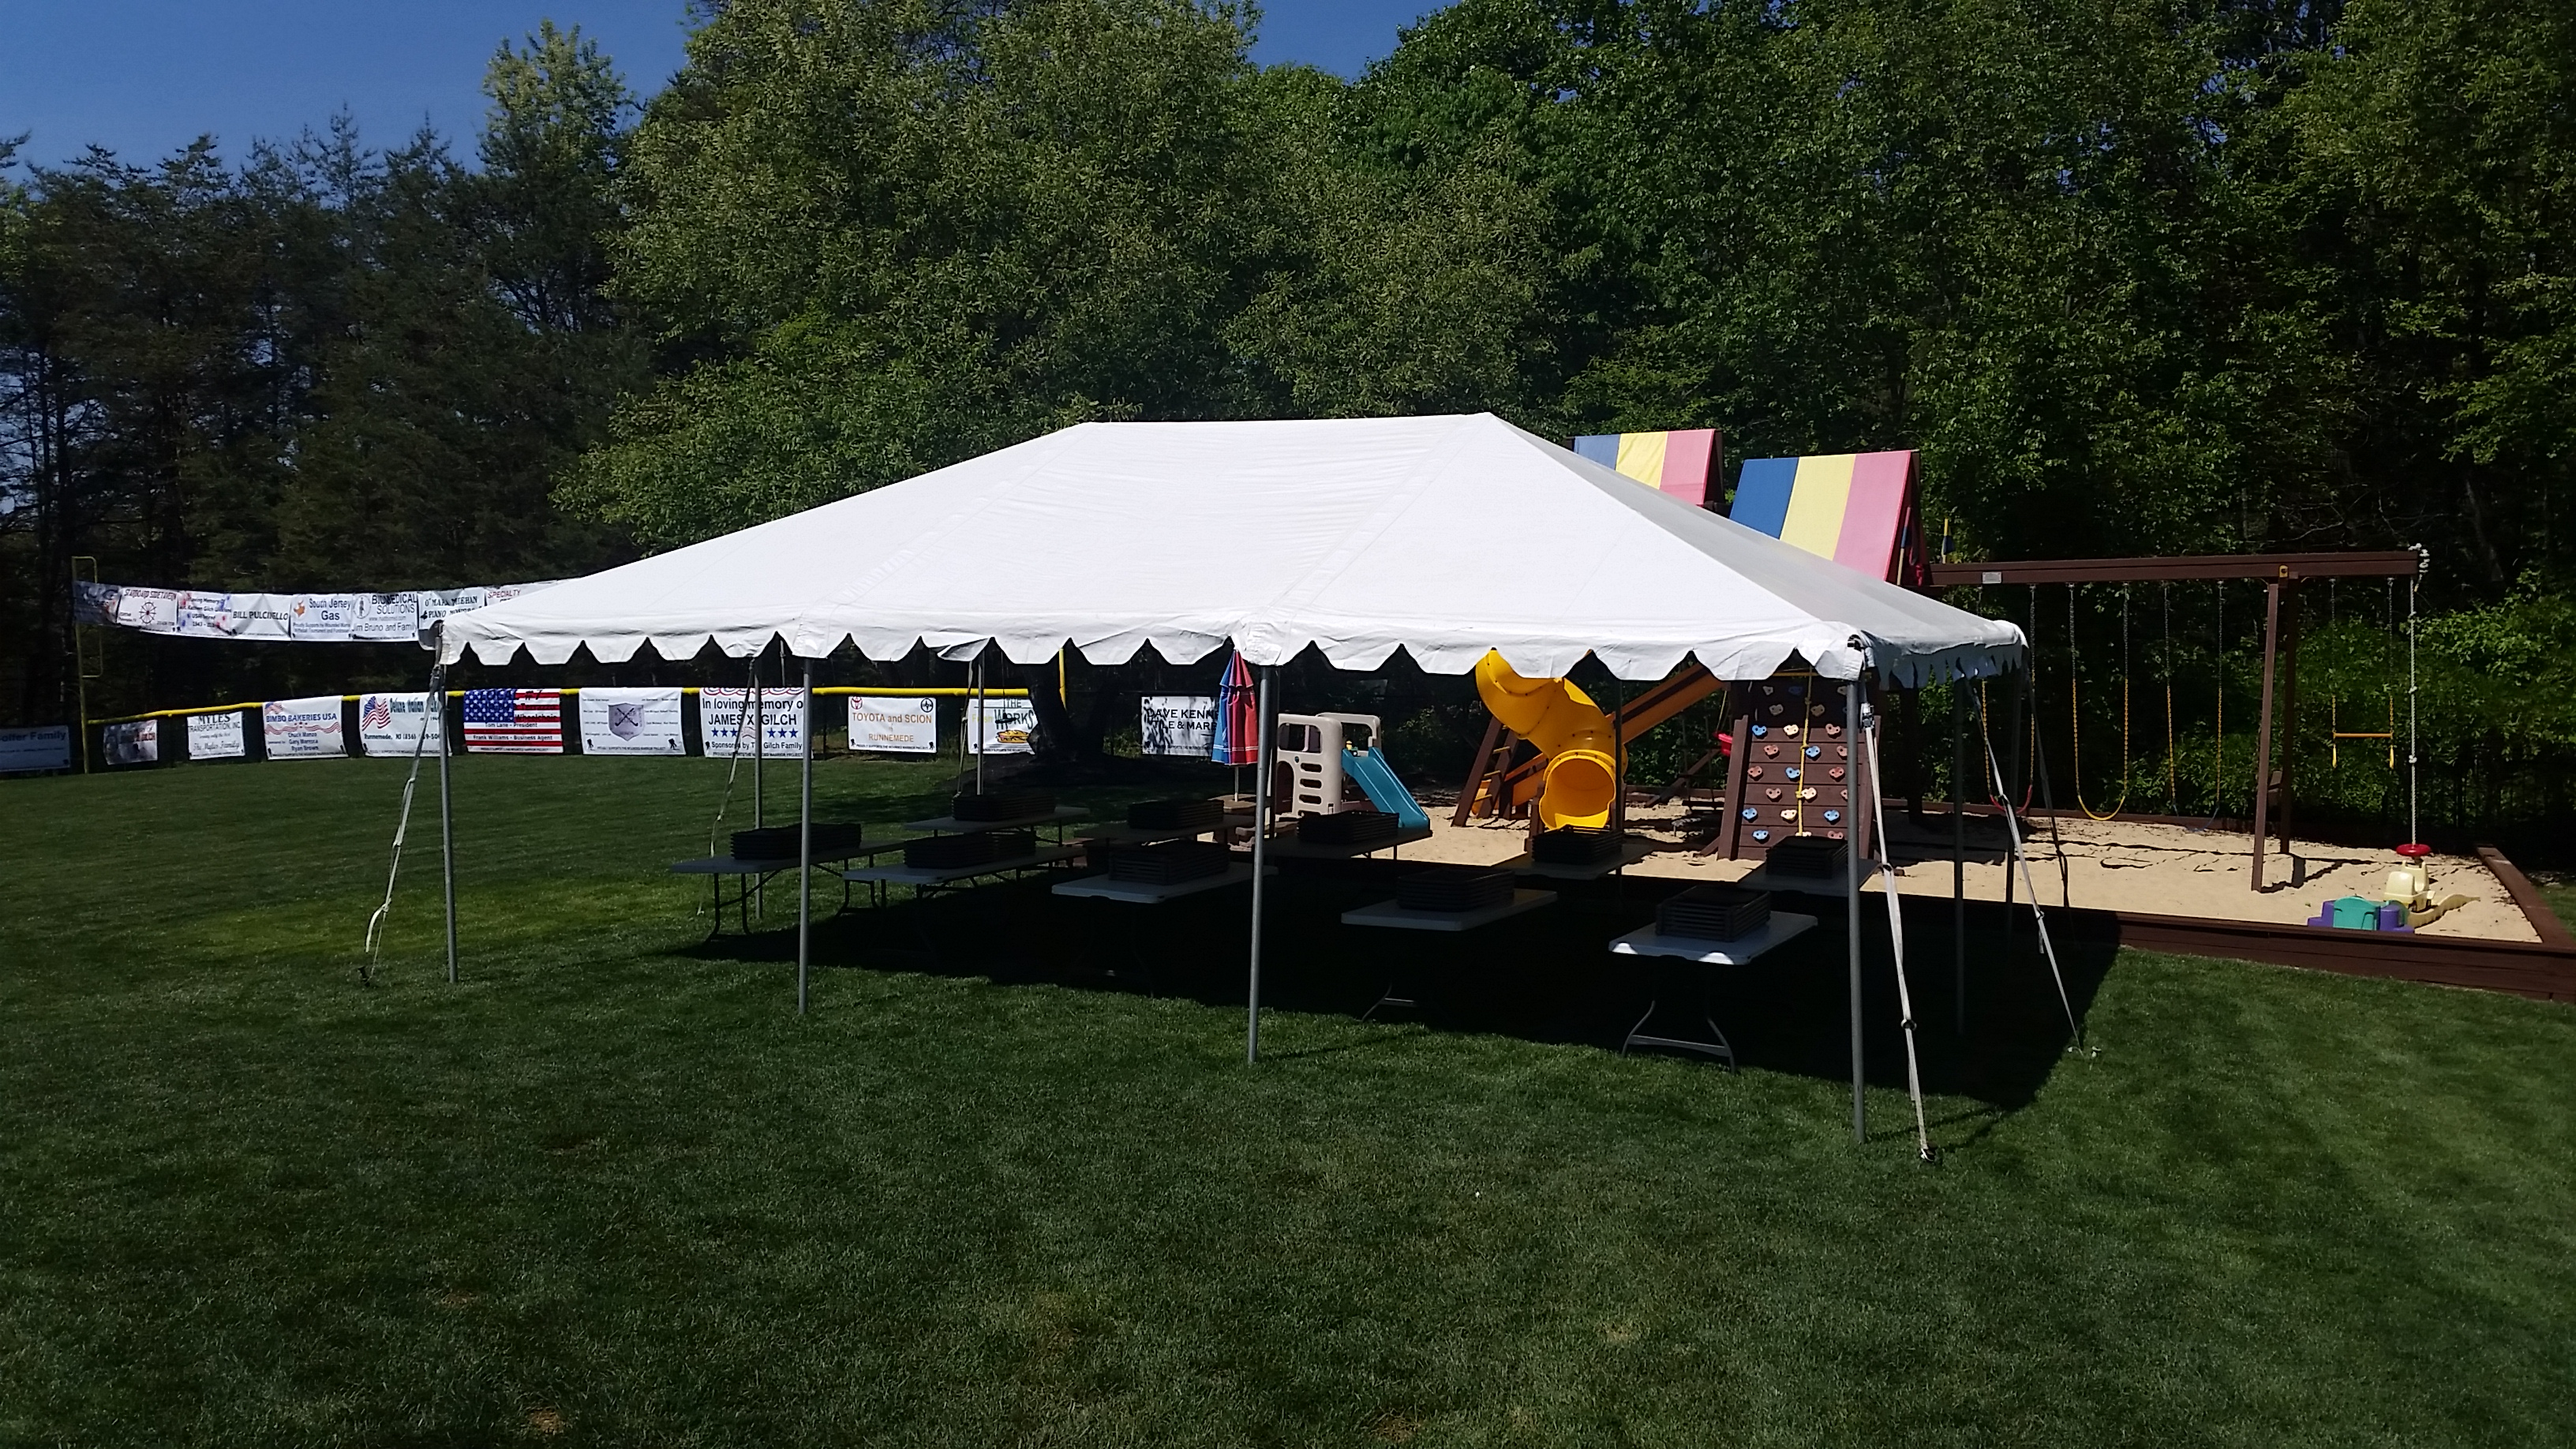 Wedding tents for 300 people - No Center Poles